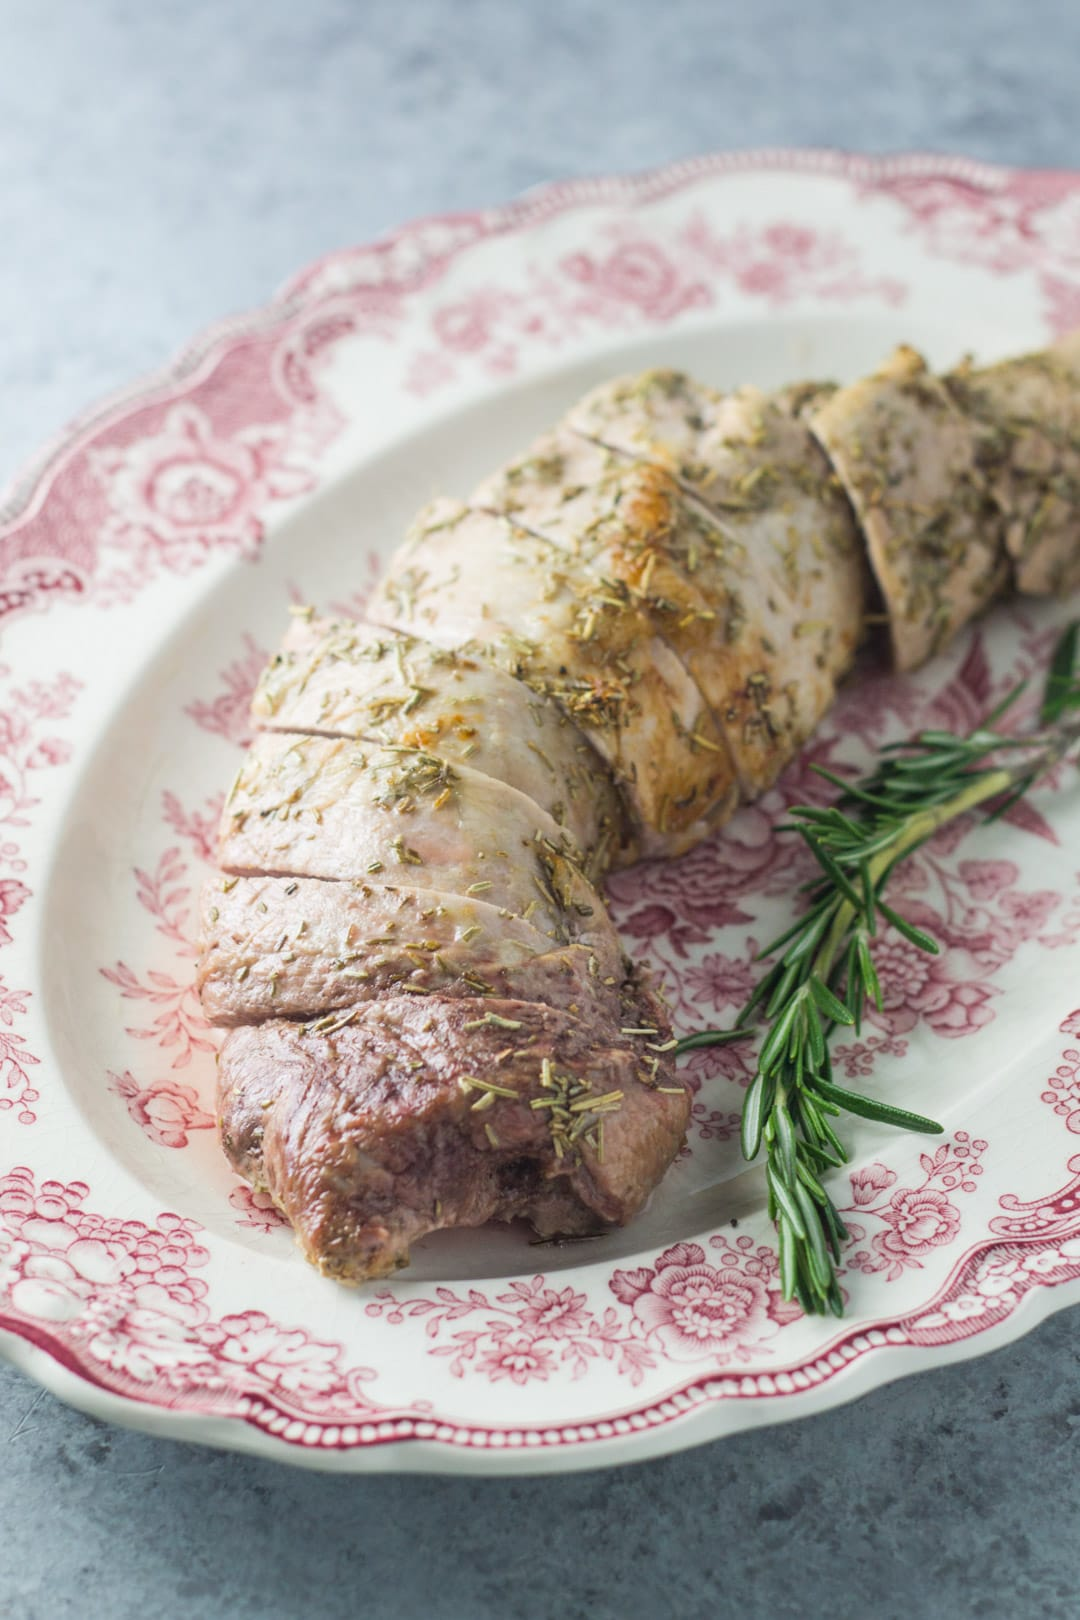 Slices of low FODMAP pork tenderloin with rosemary on an antique plate